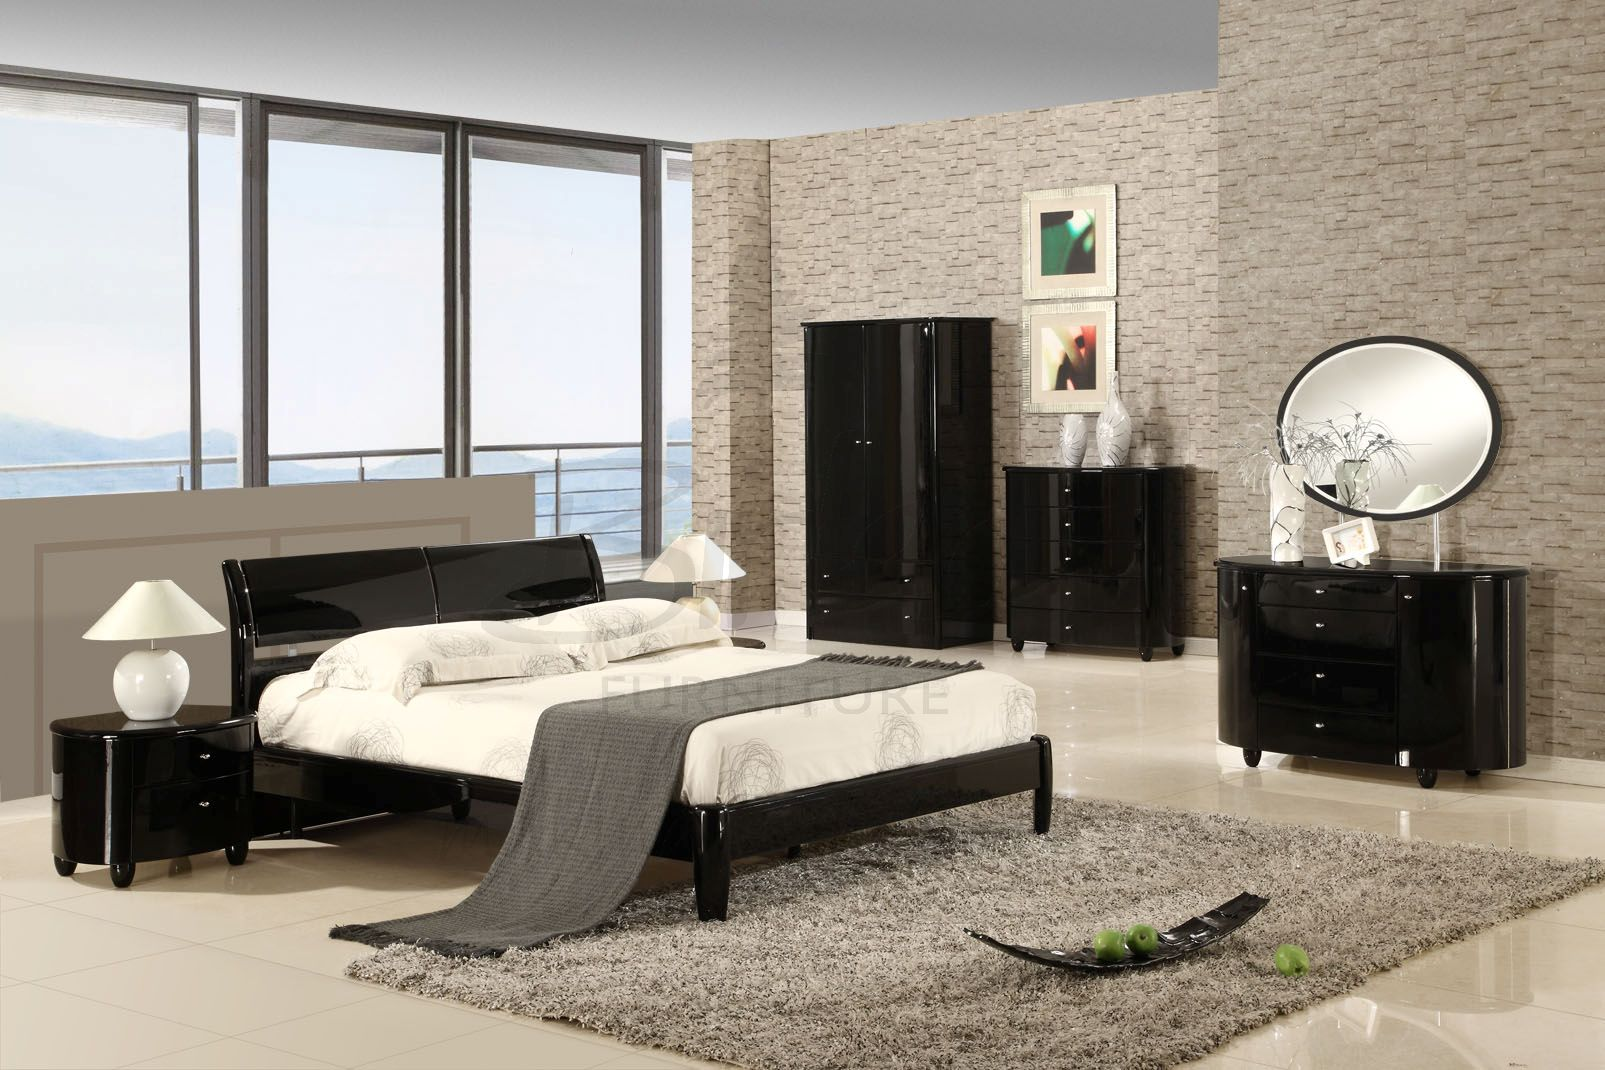 black-and-white toile high gloss bedroom furniture uk the balance between